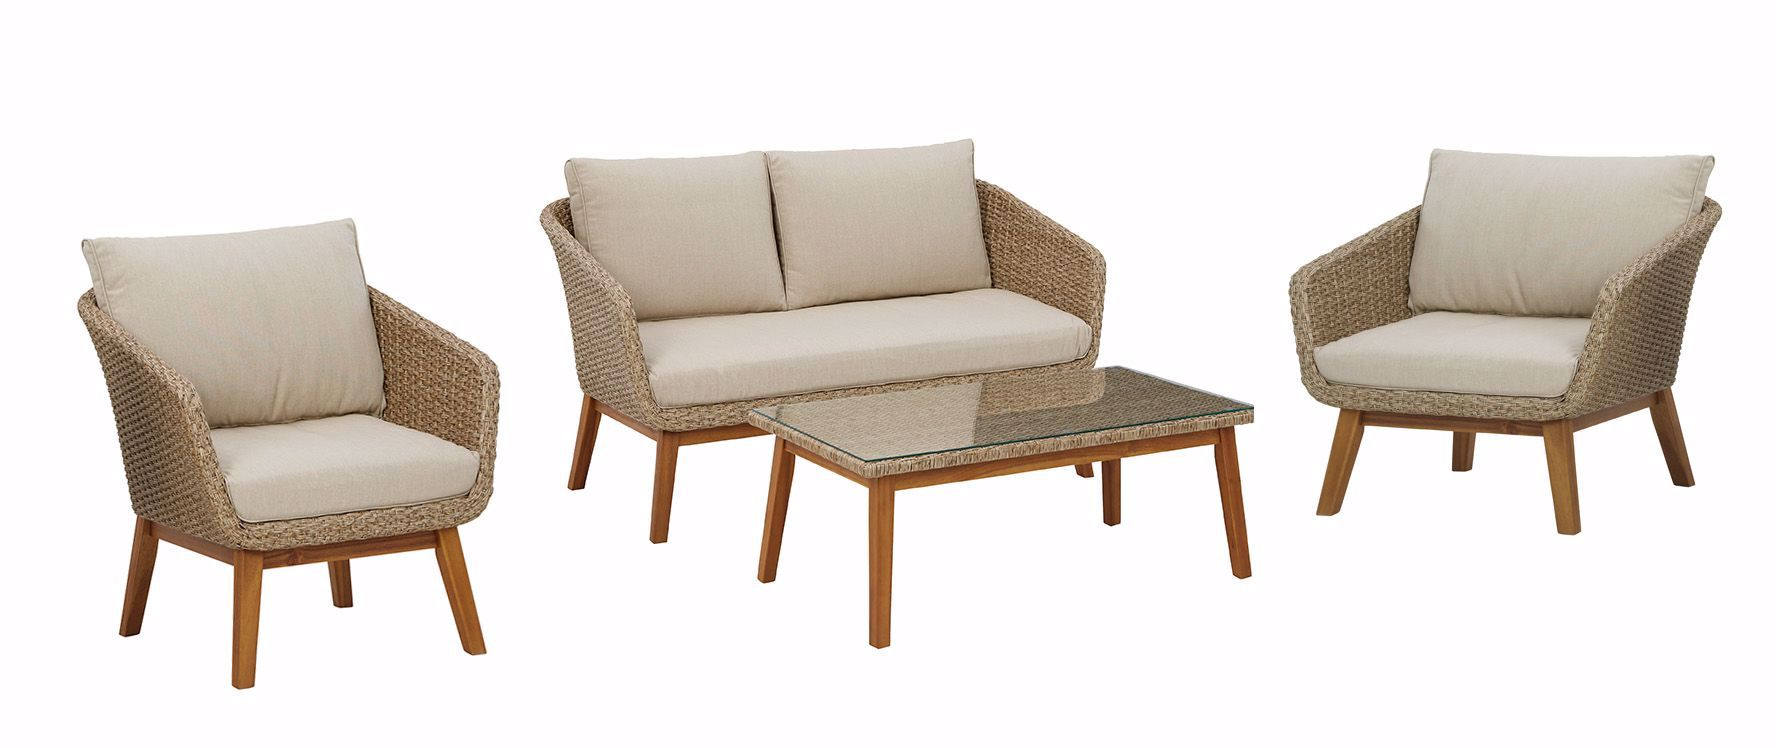 Picture of Crystal Cave Cocktail Table, Loveseat, and 2 Chairs